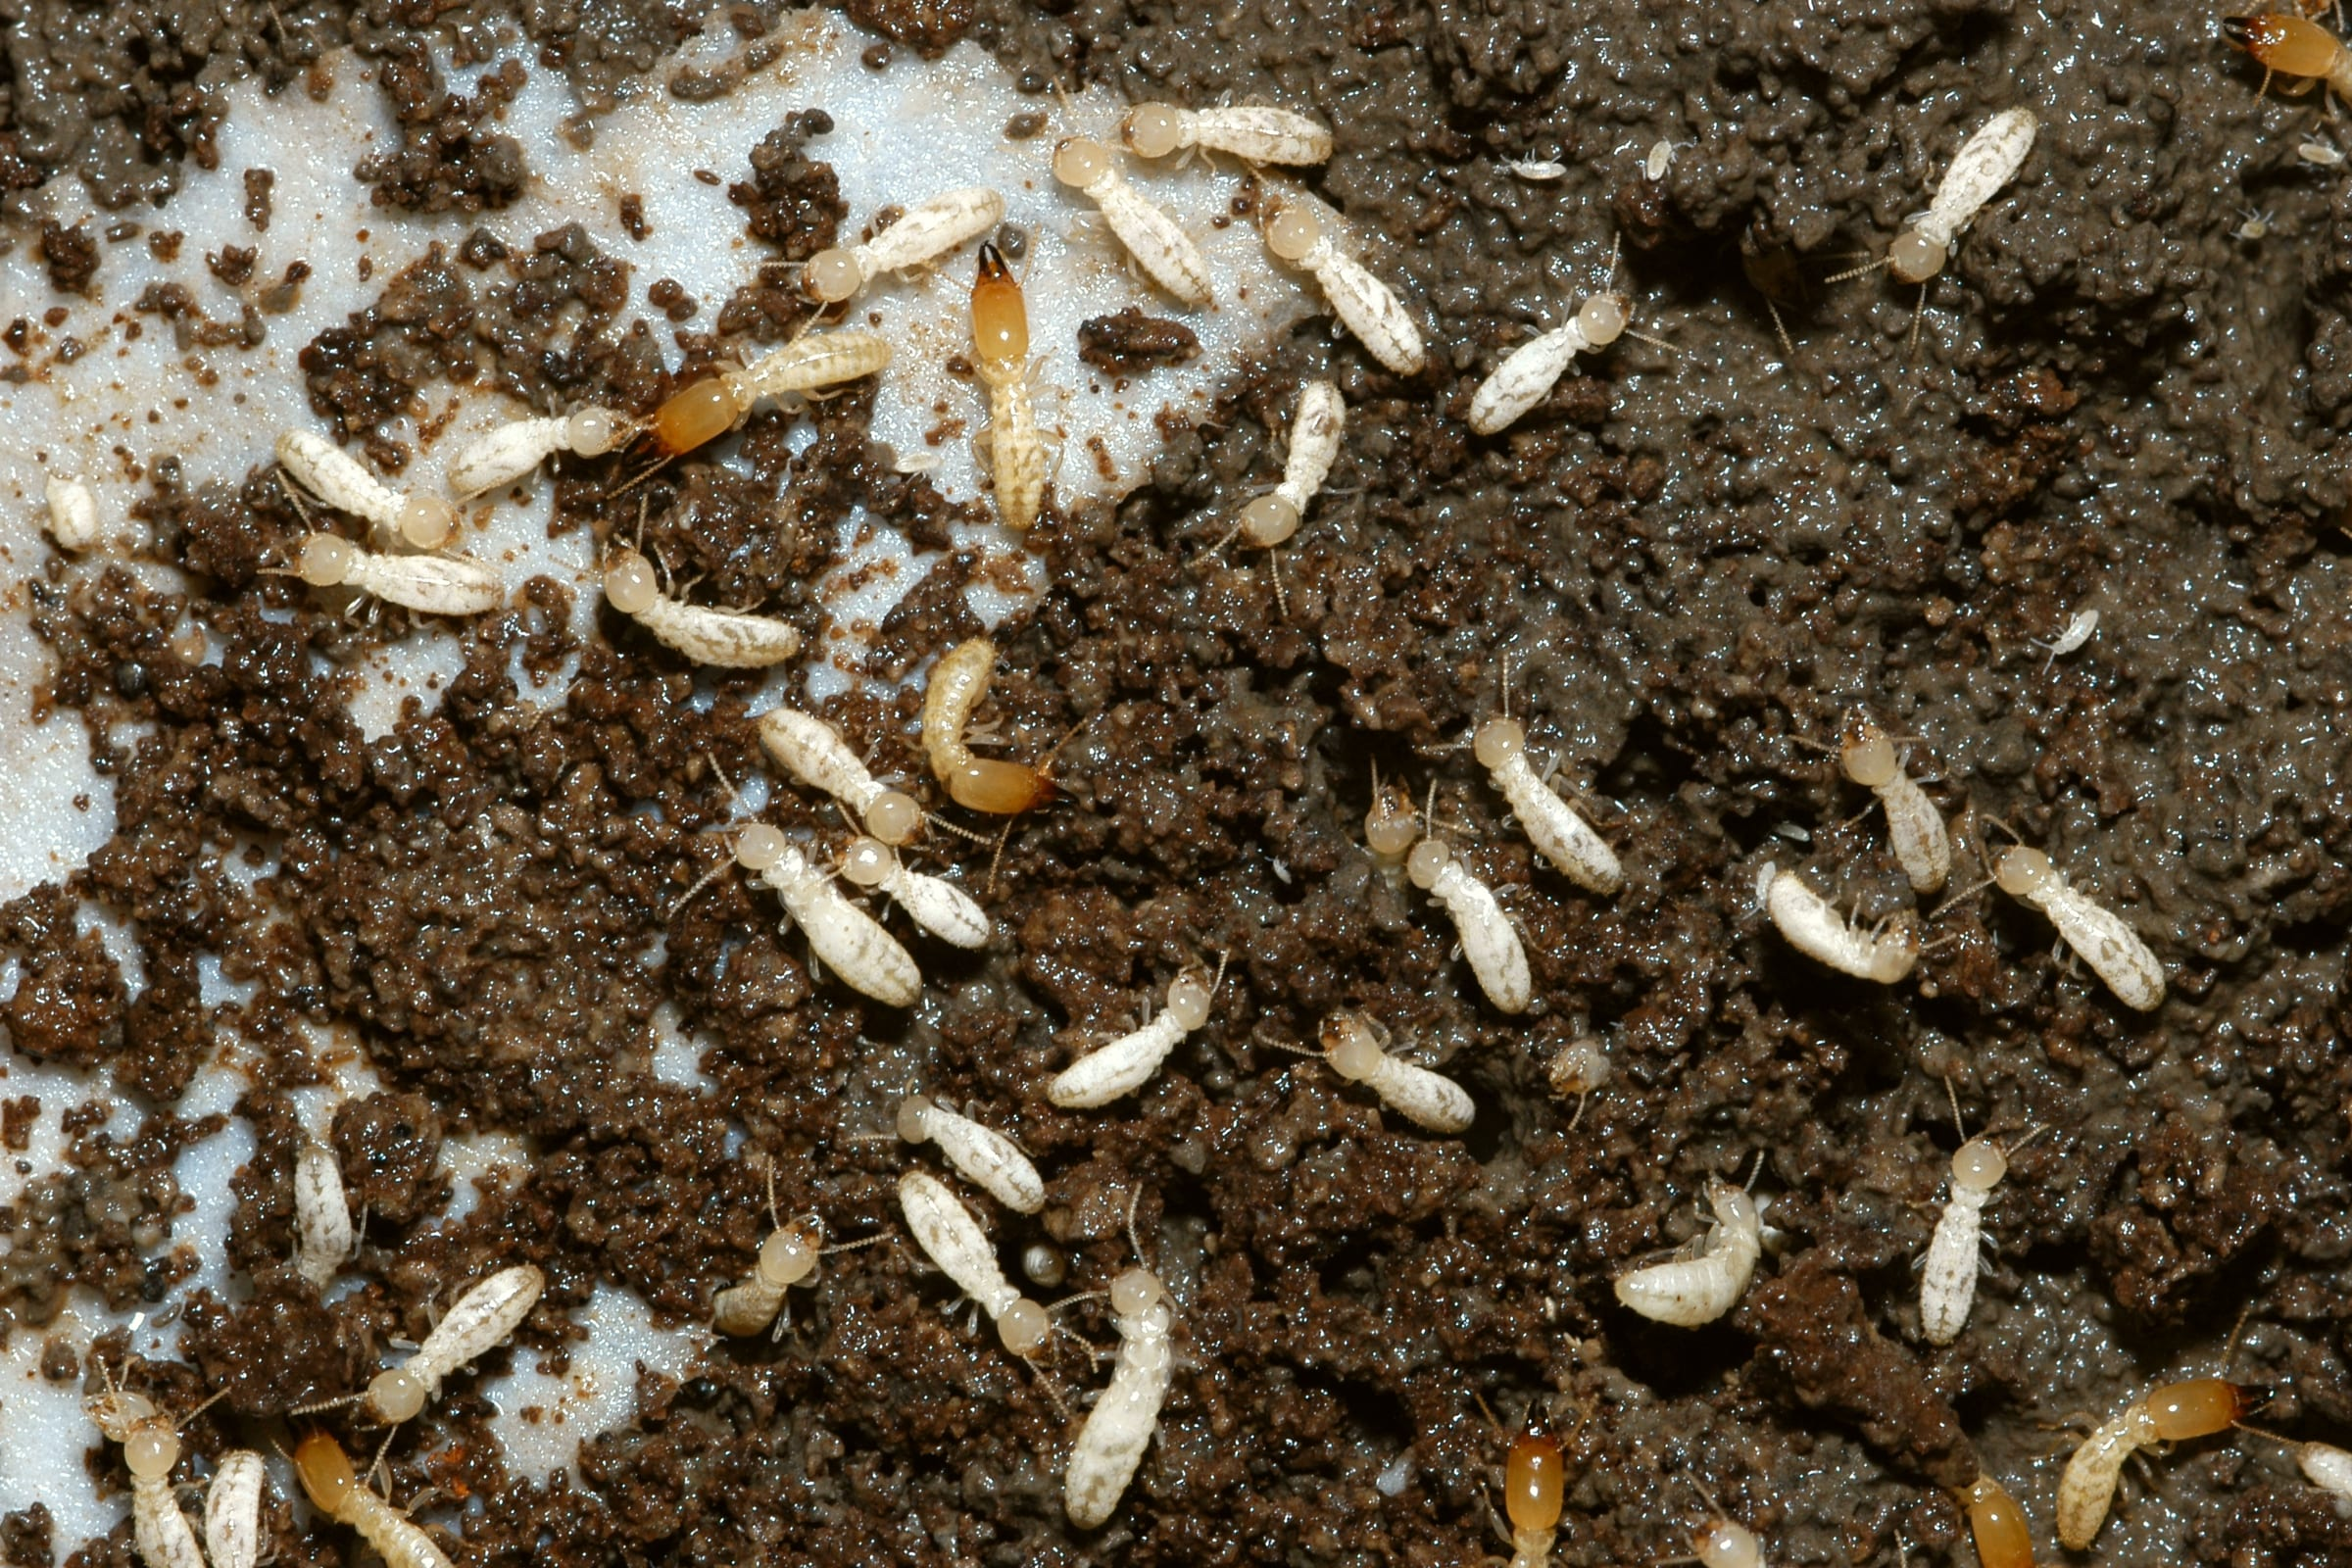 Termites Eating House